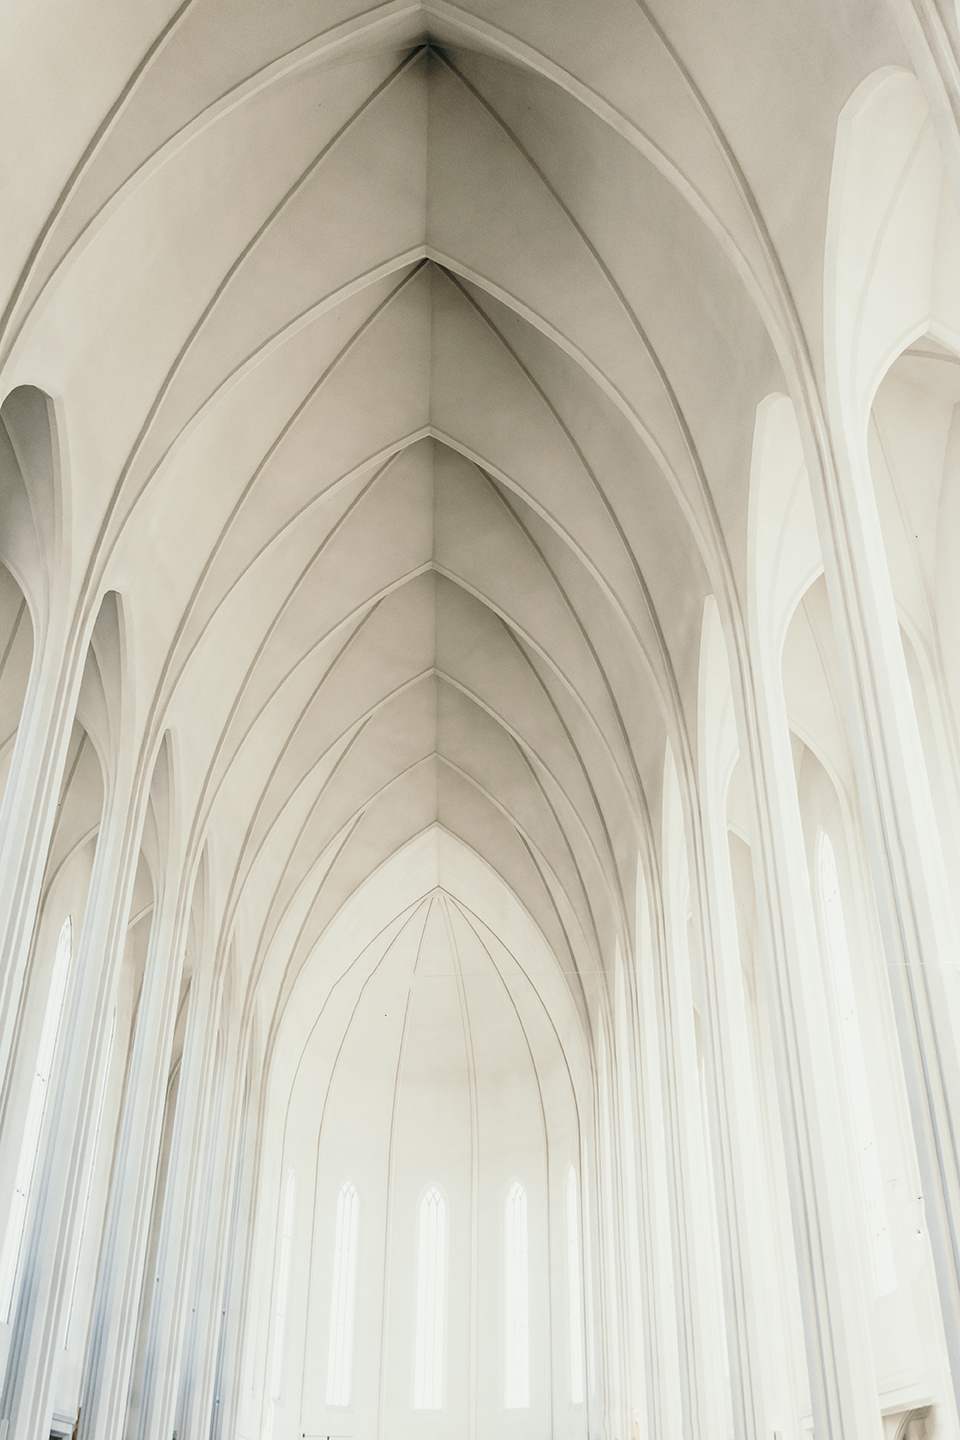 Inside Hallgrimskirkja church in Reykjavik. The ceiling is all white with vaults and huge columns